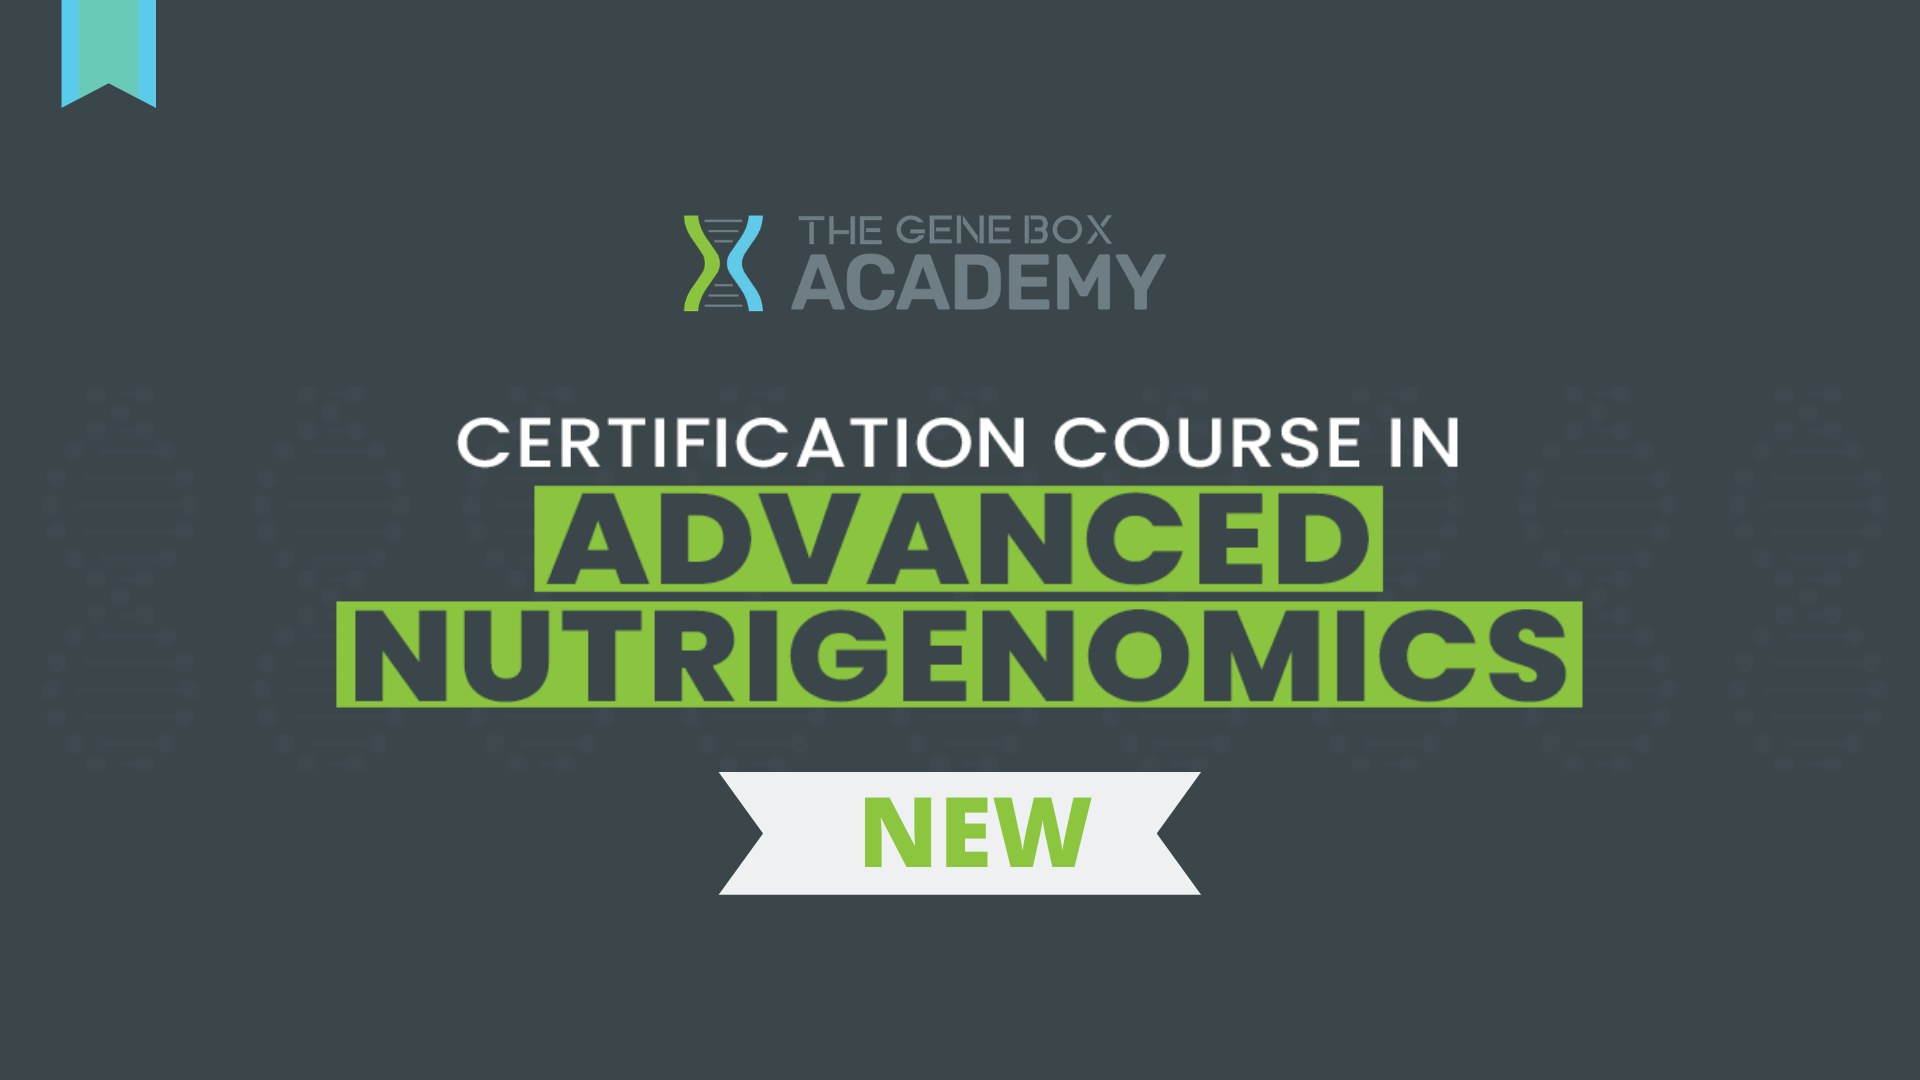 nutrigenomics, certified course on genetics, nutrition, diet,